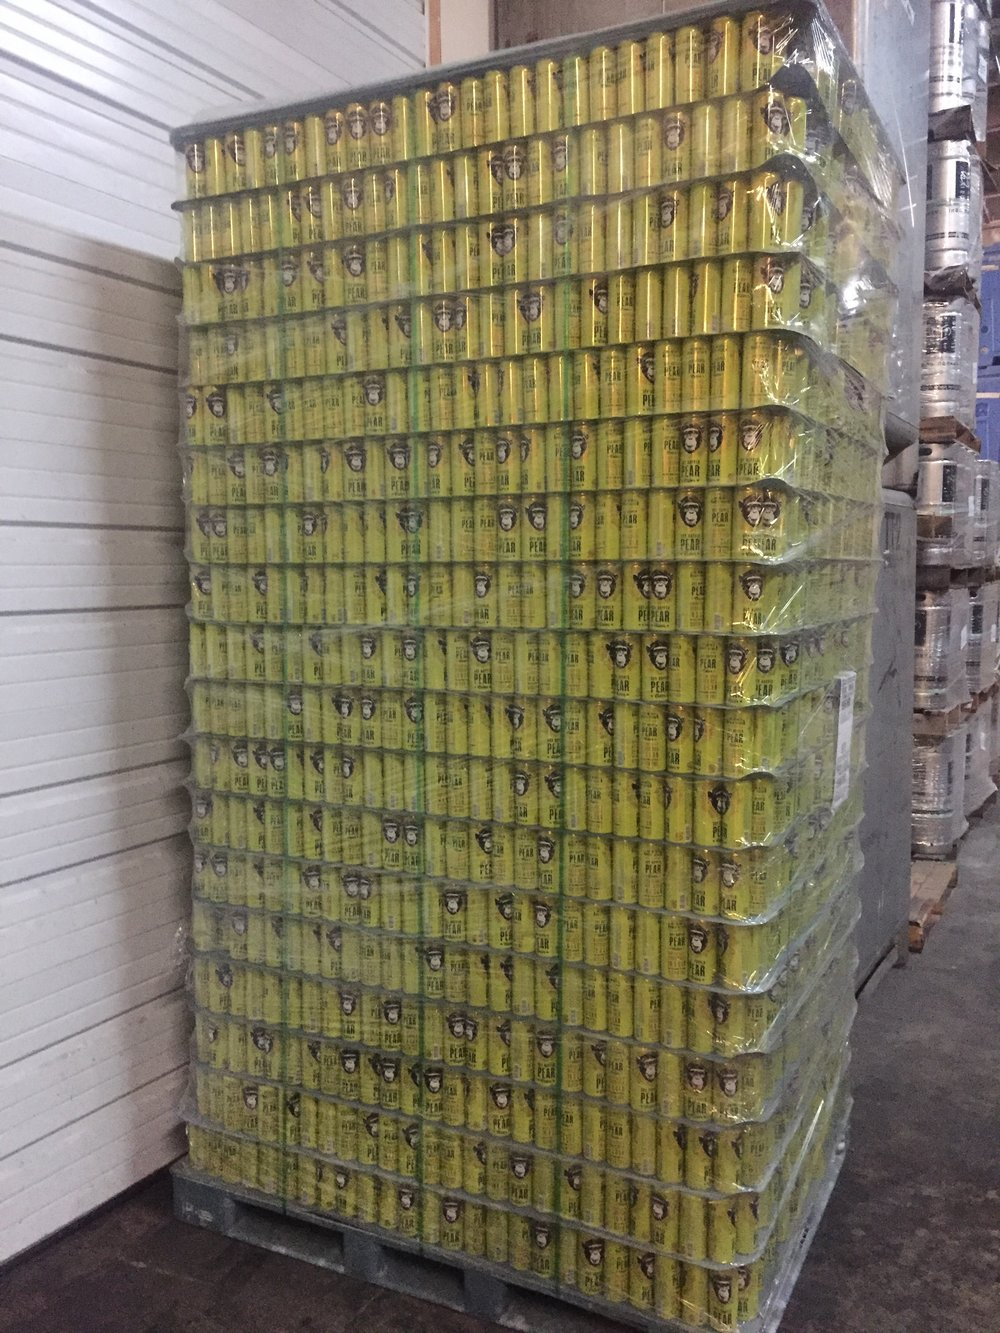 A buttload of dry-hopped pear cider.